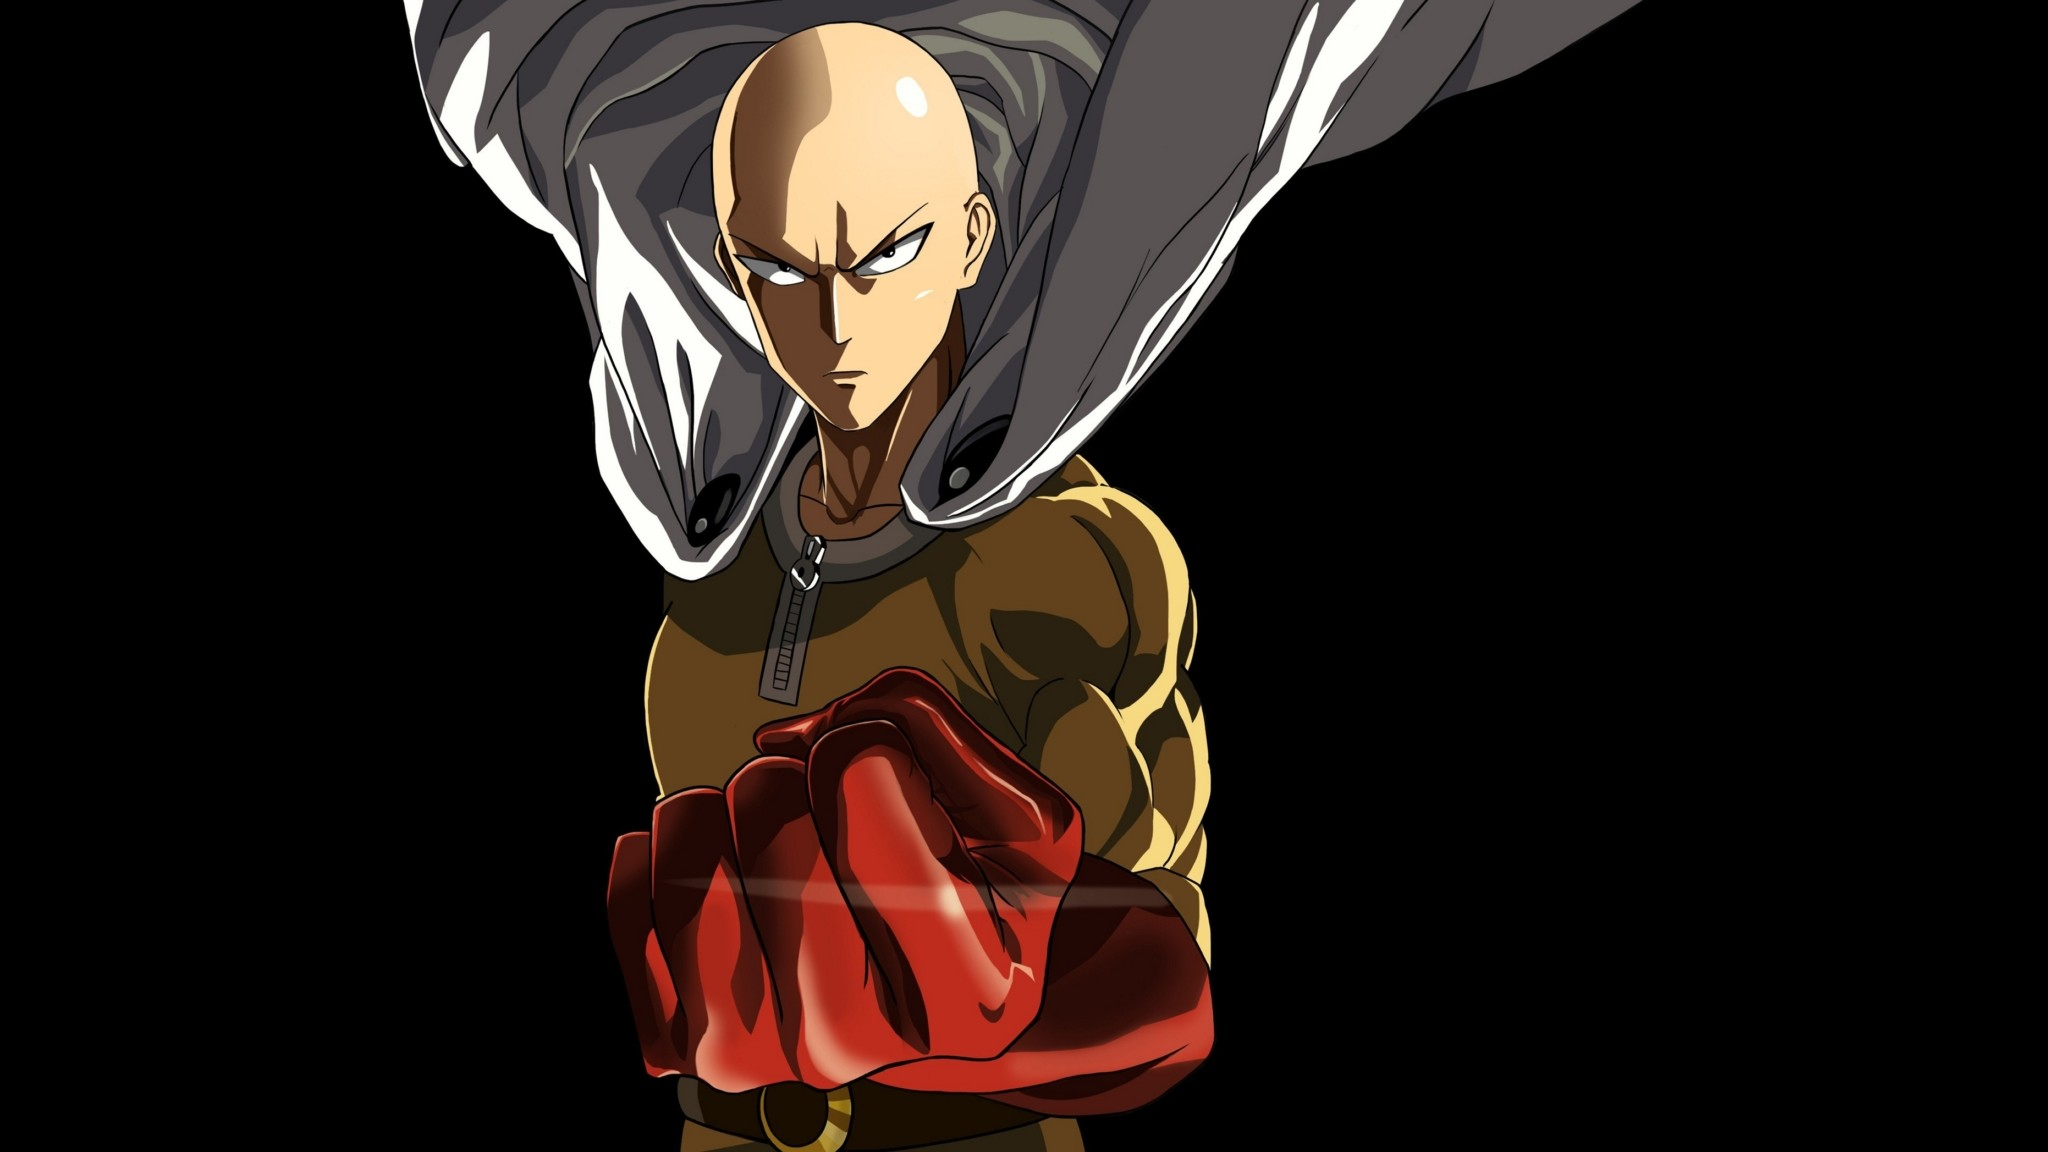 Download Saitama One Punch Man Marvelous Anime Halloween Wallpaper In Many  Resolutions